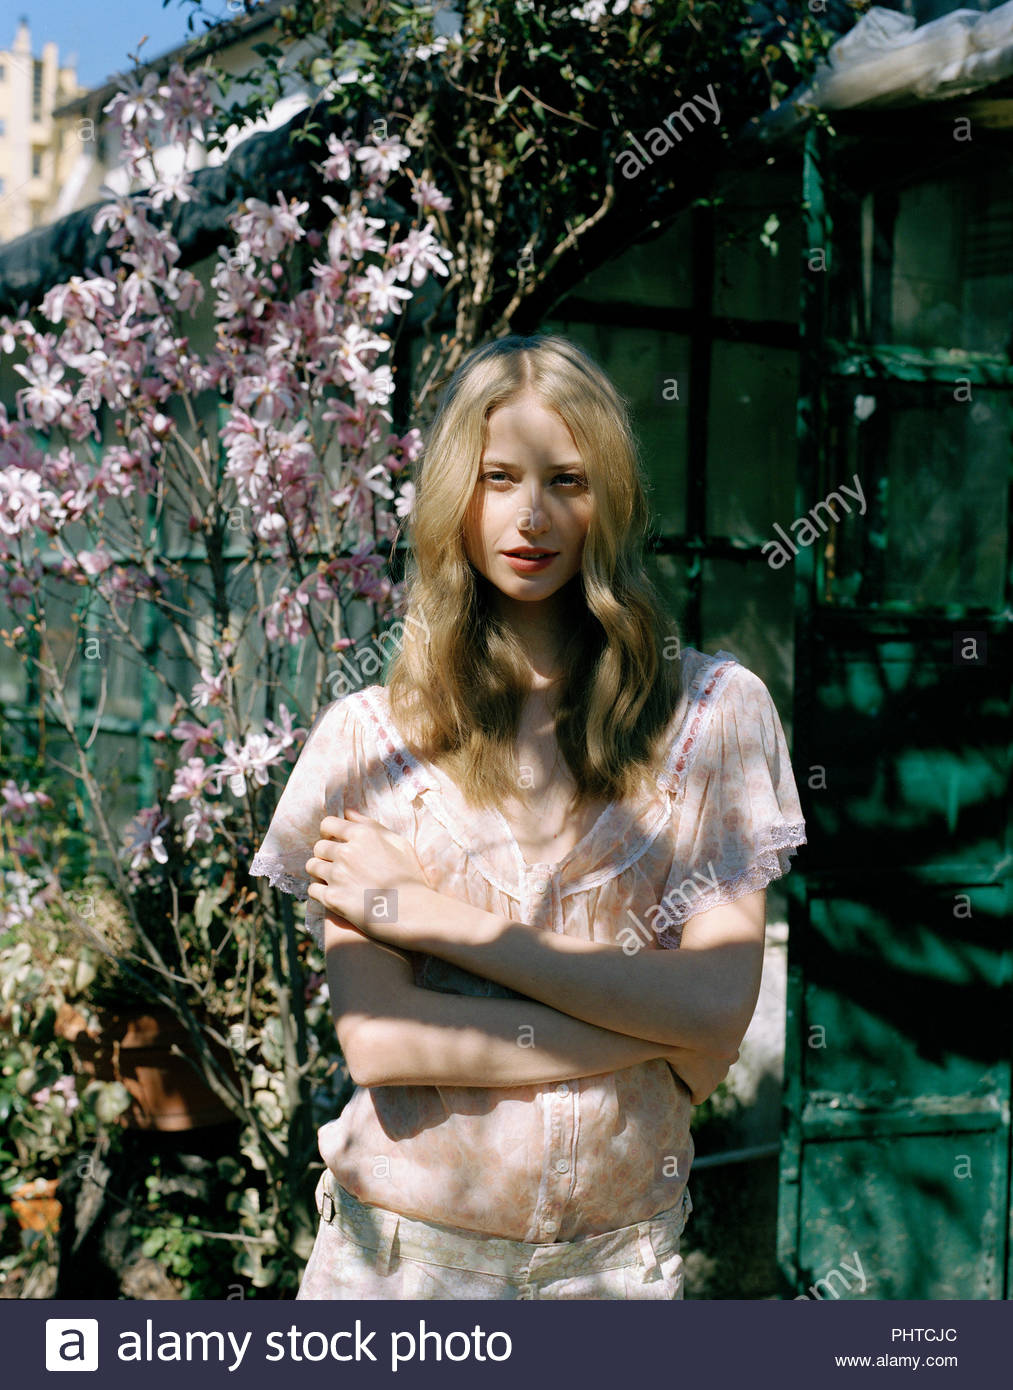 Blond haired young woman in garden - Stock Image